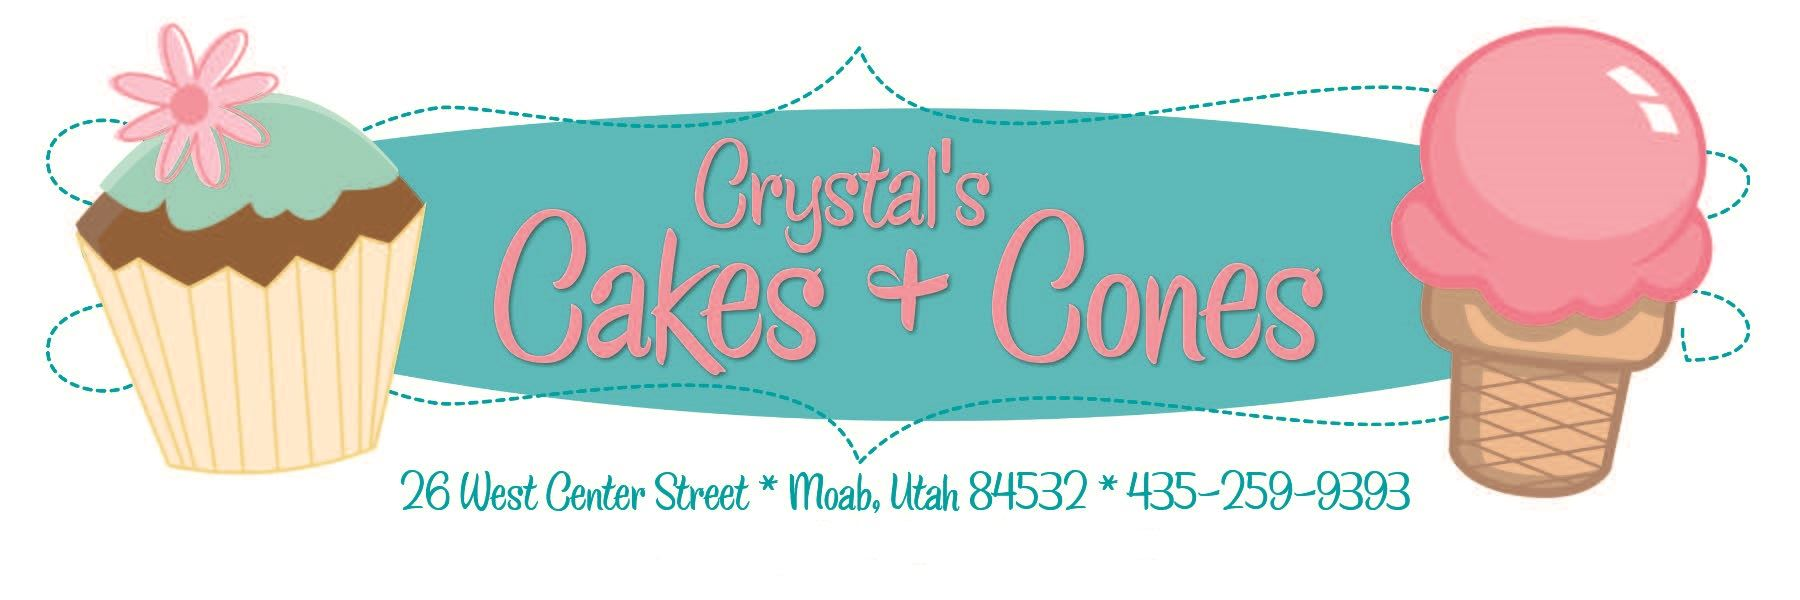 CrystalsCakes